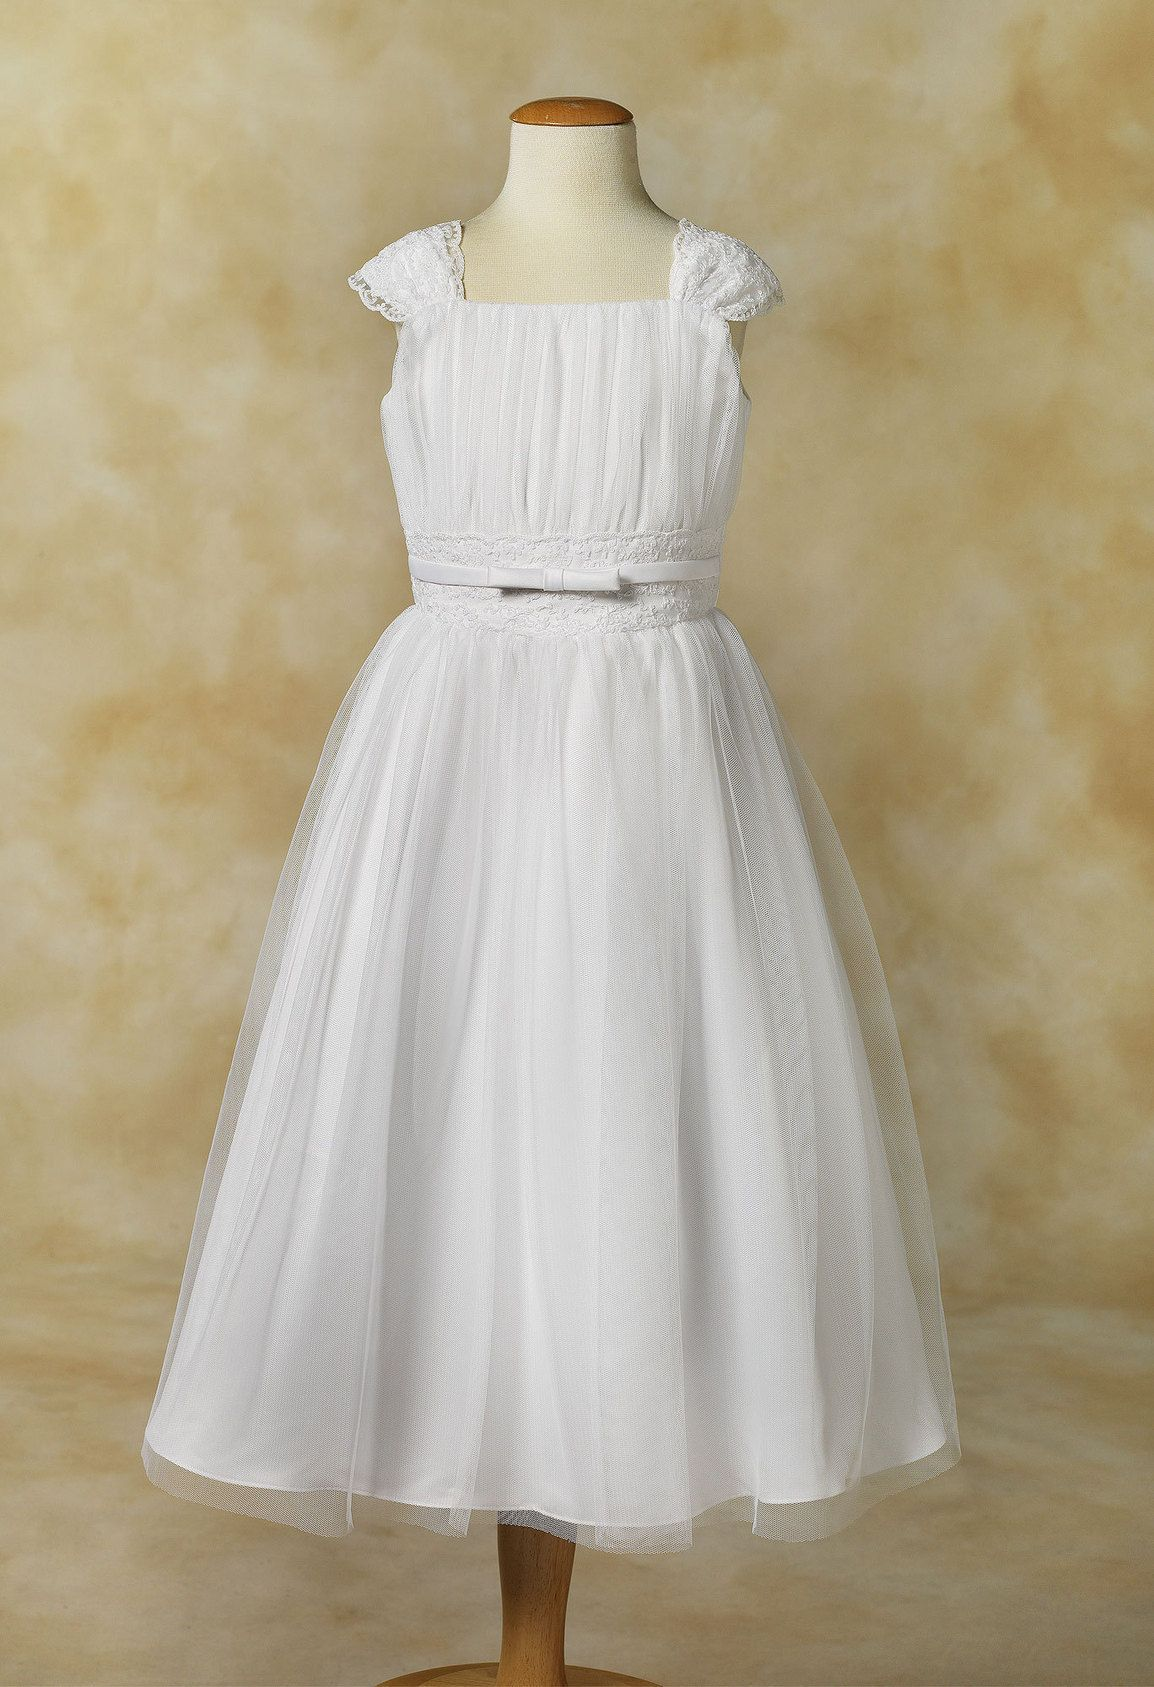 Makers Of Lds Temple Clothes Temple Dresses Pioneer Costumes And More Simple White Dress Dresses Little White Dresses